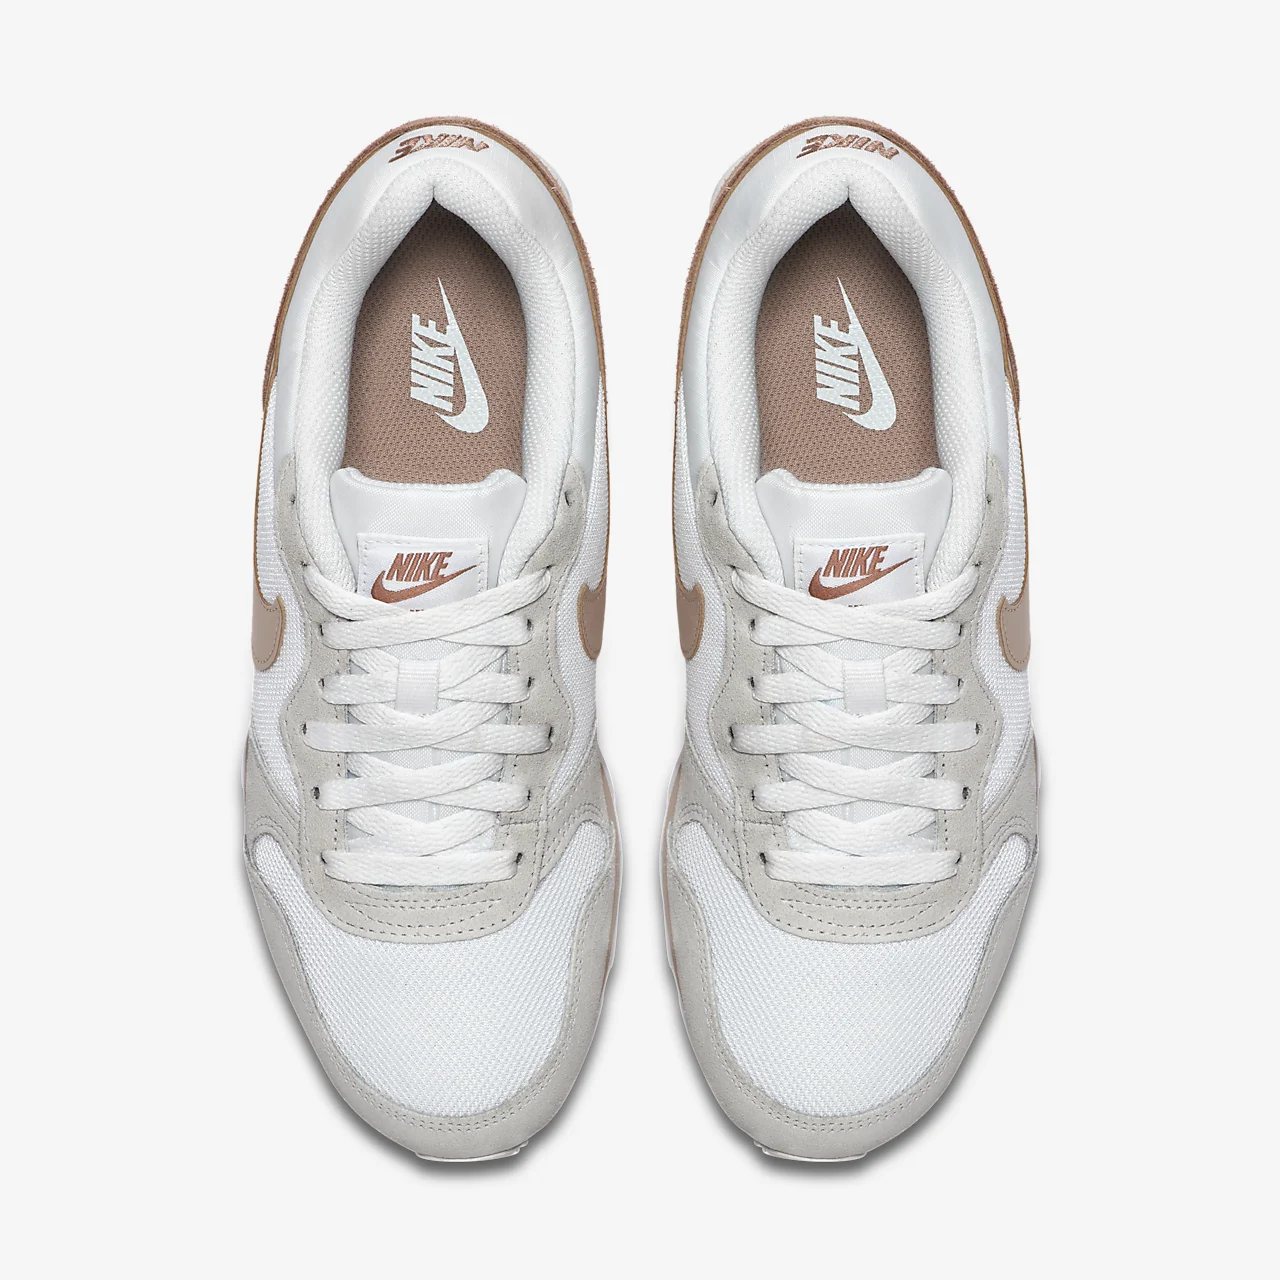 유럽직배송 나이키 NIKE Nike MD Runner 2 Women's Shoe 749869-104